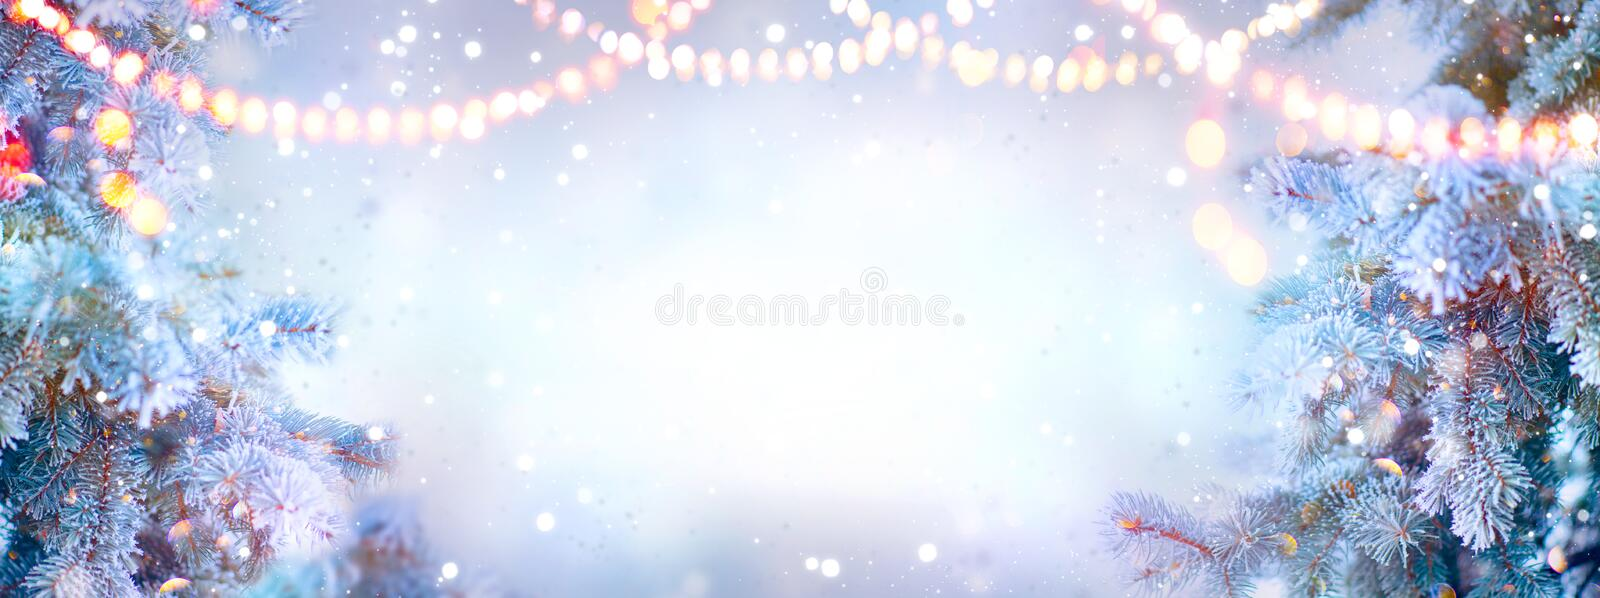 Christmas background. Xmas tree with snow decorated with garland lights, holiday festive backdround royalty free stock images